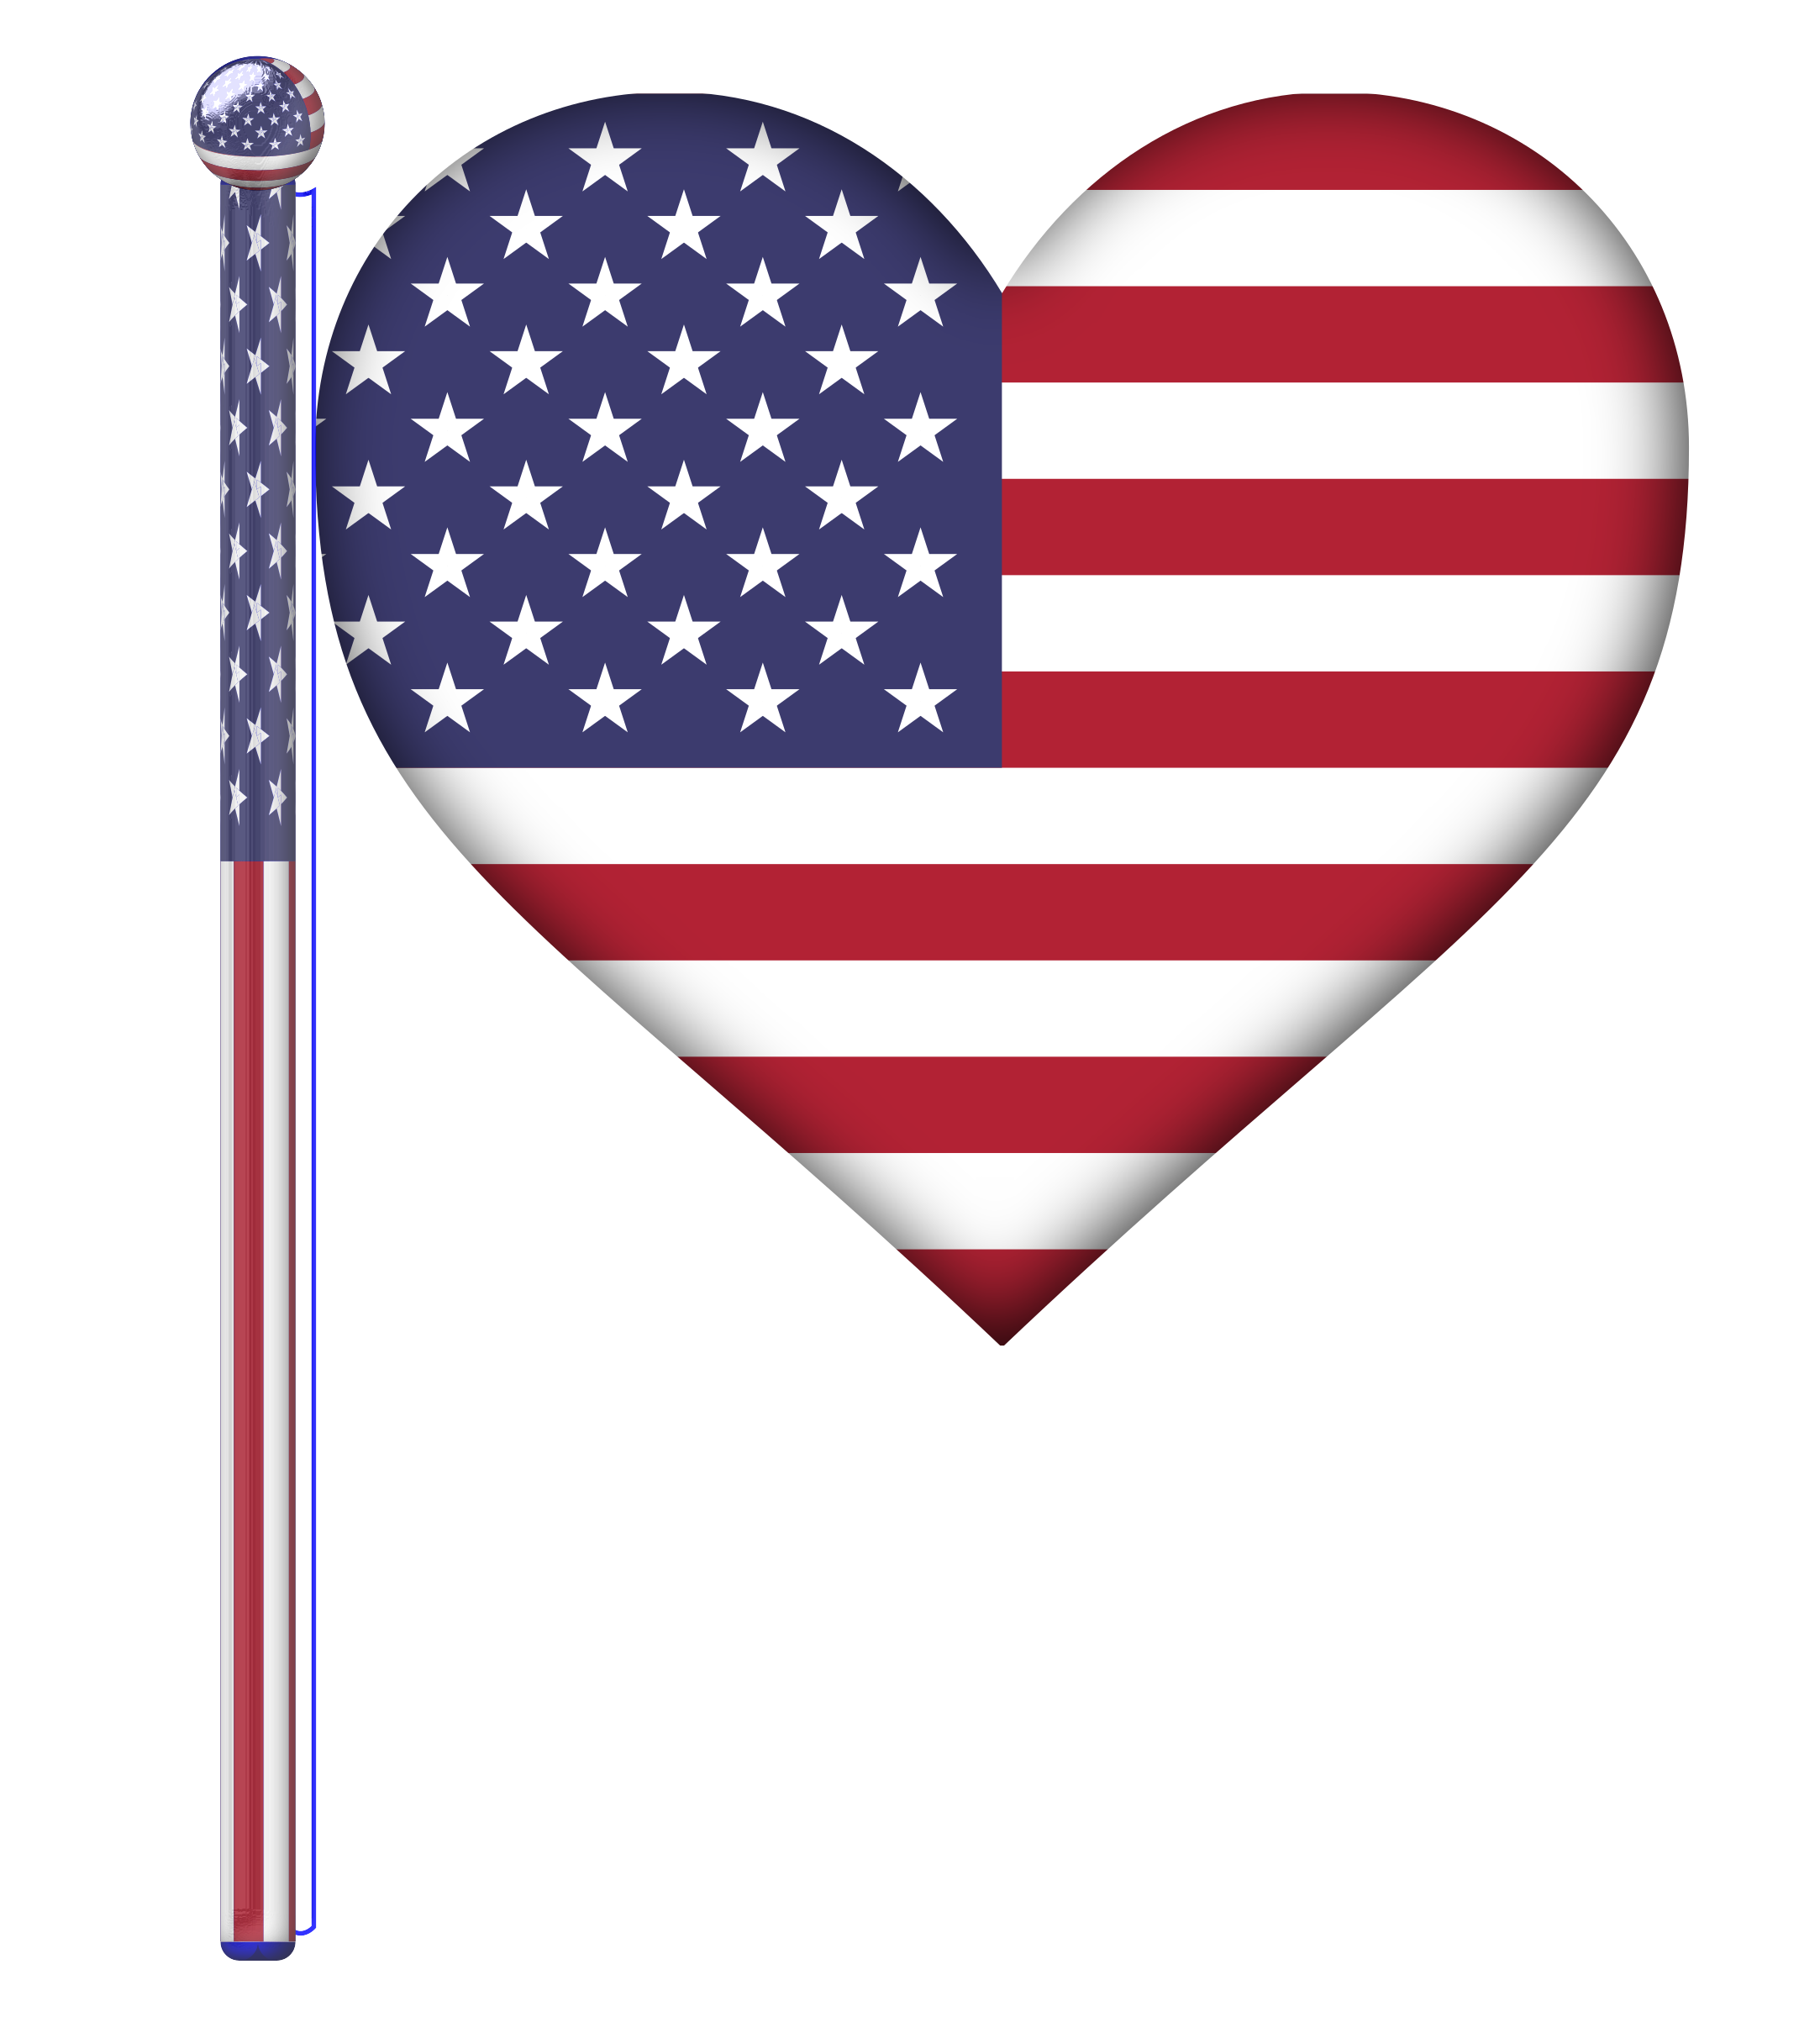 svg flags heart